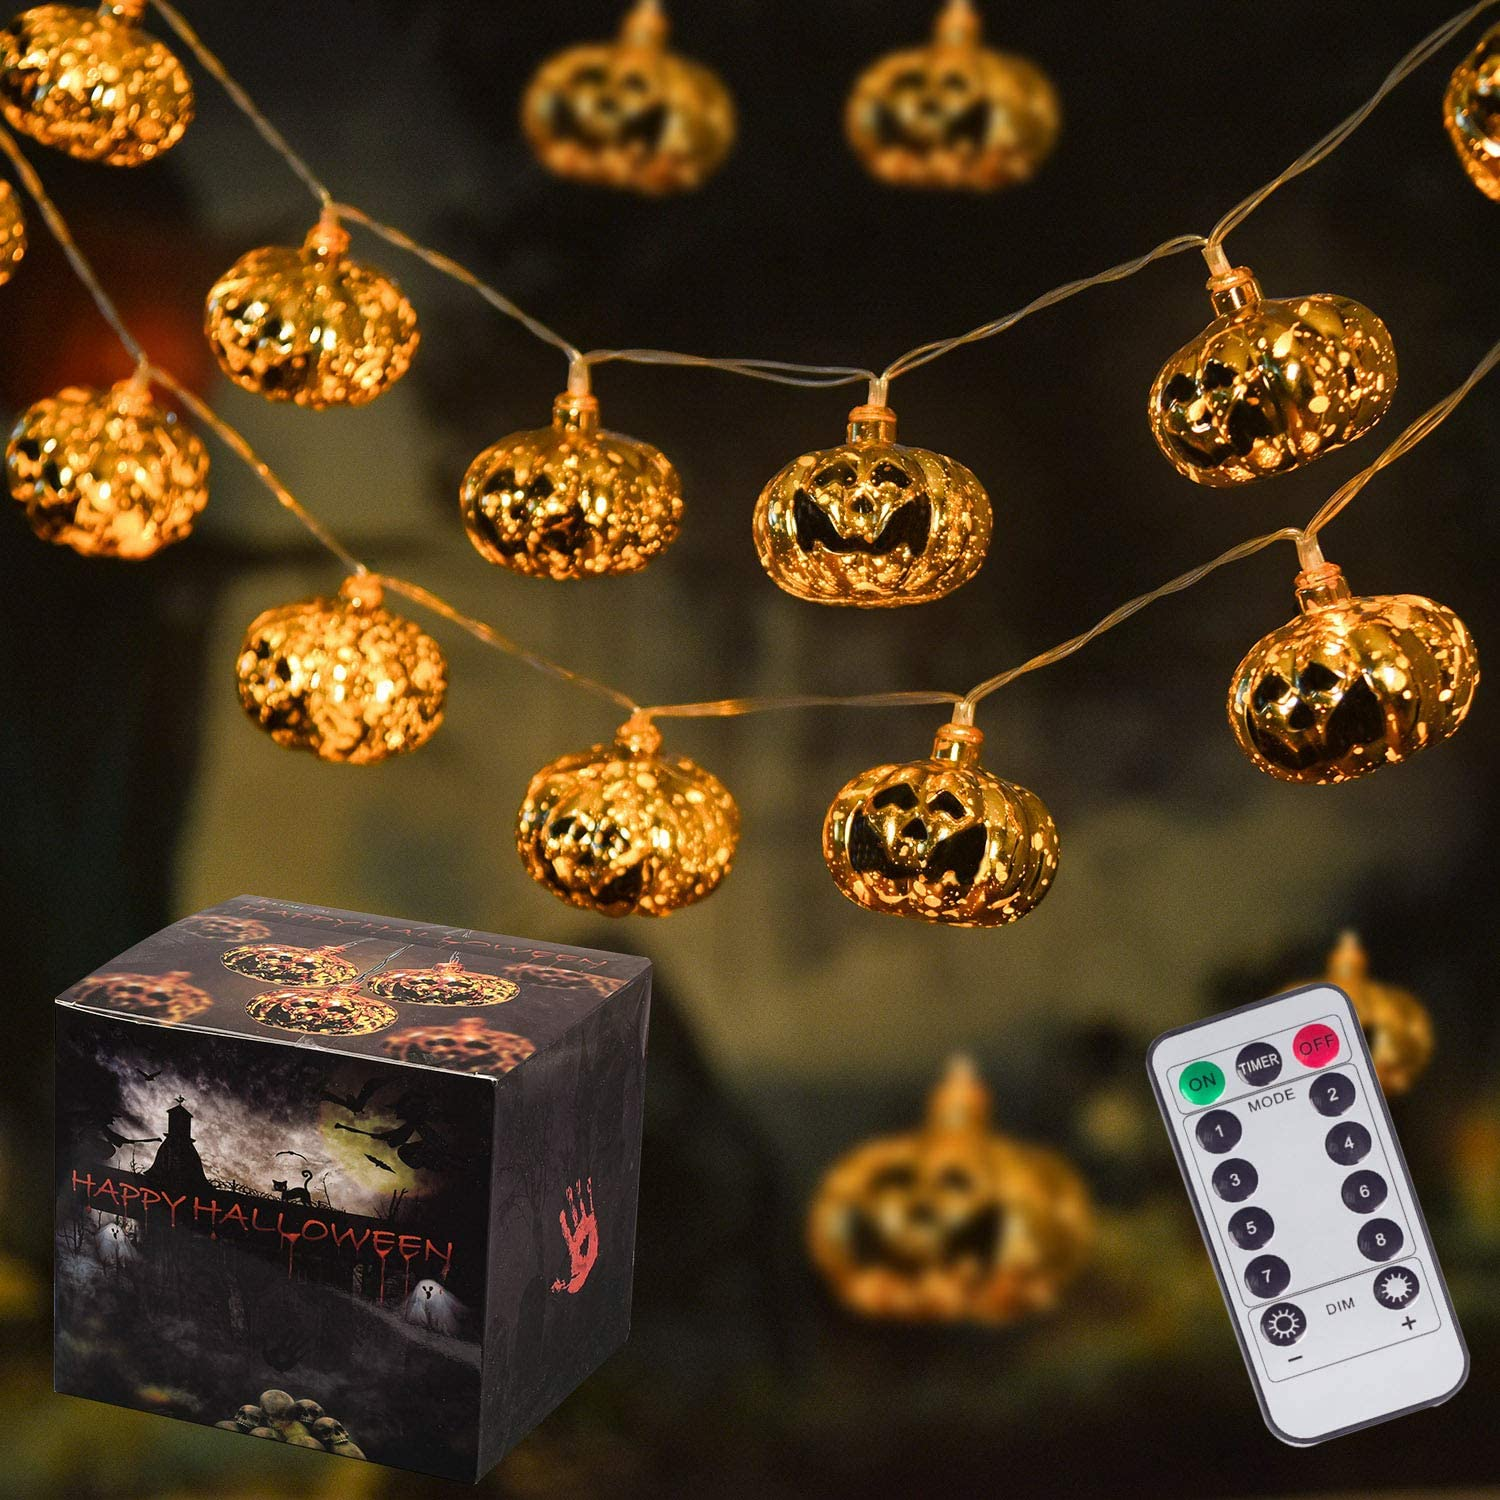 30LED Halloween String Lights, 8 Modes Pumpkin Lights Battery Powered Lights with Remote for Halloween Indoor and Outdoor Decor (Golden)